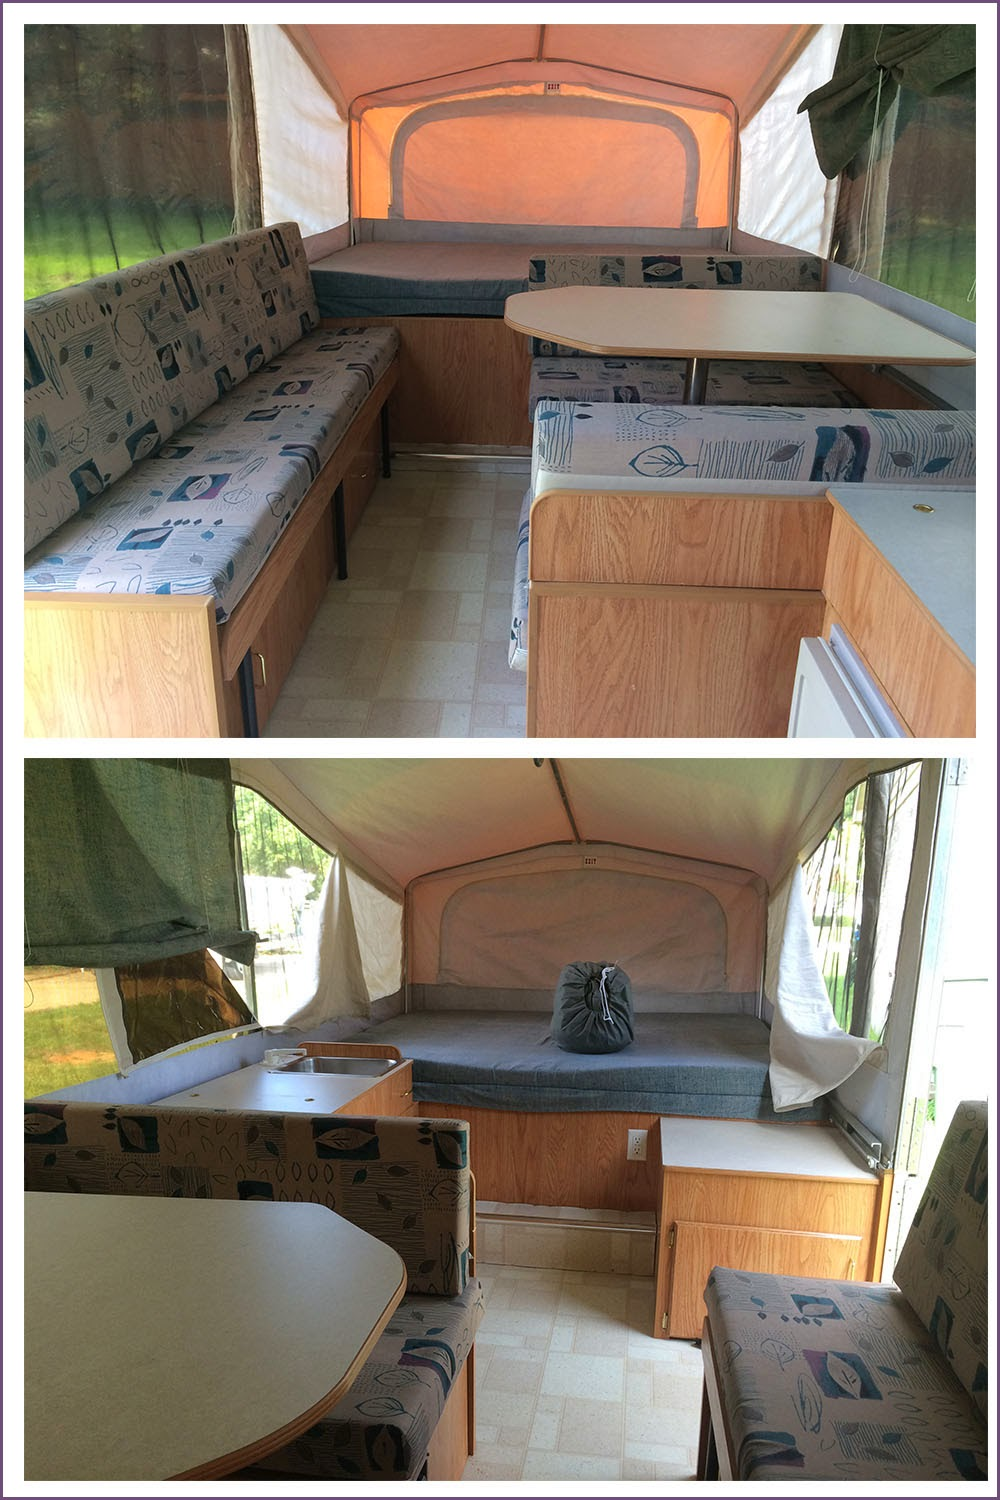 Crafty hope pop up camper supplies ideas and suggestions for Pop up camper interior designs